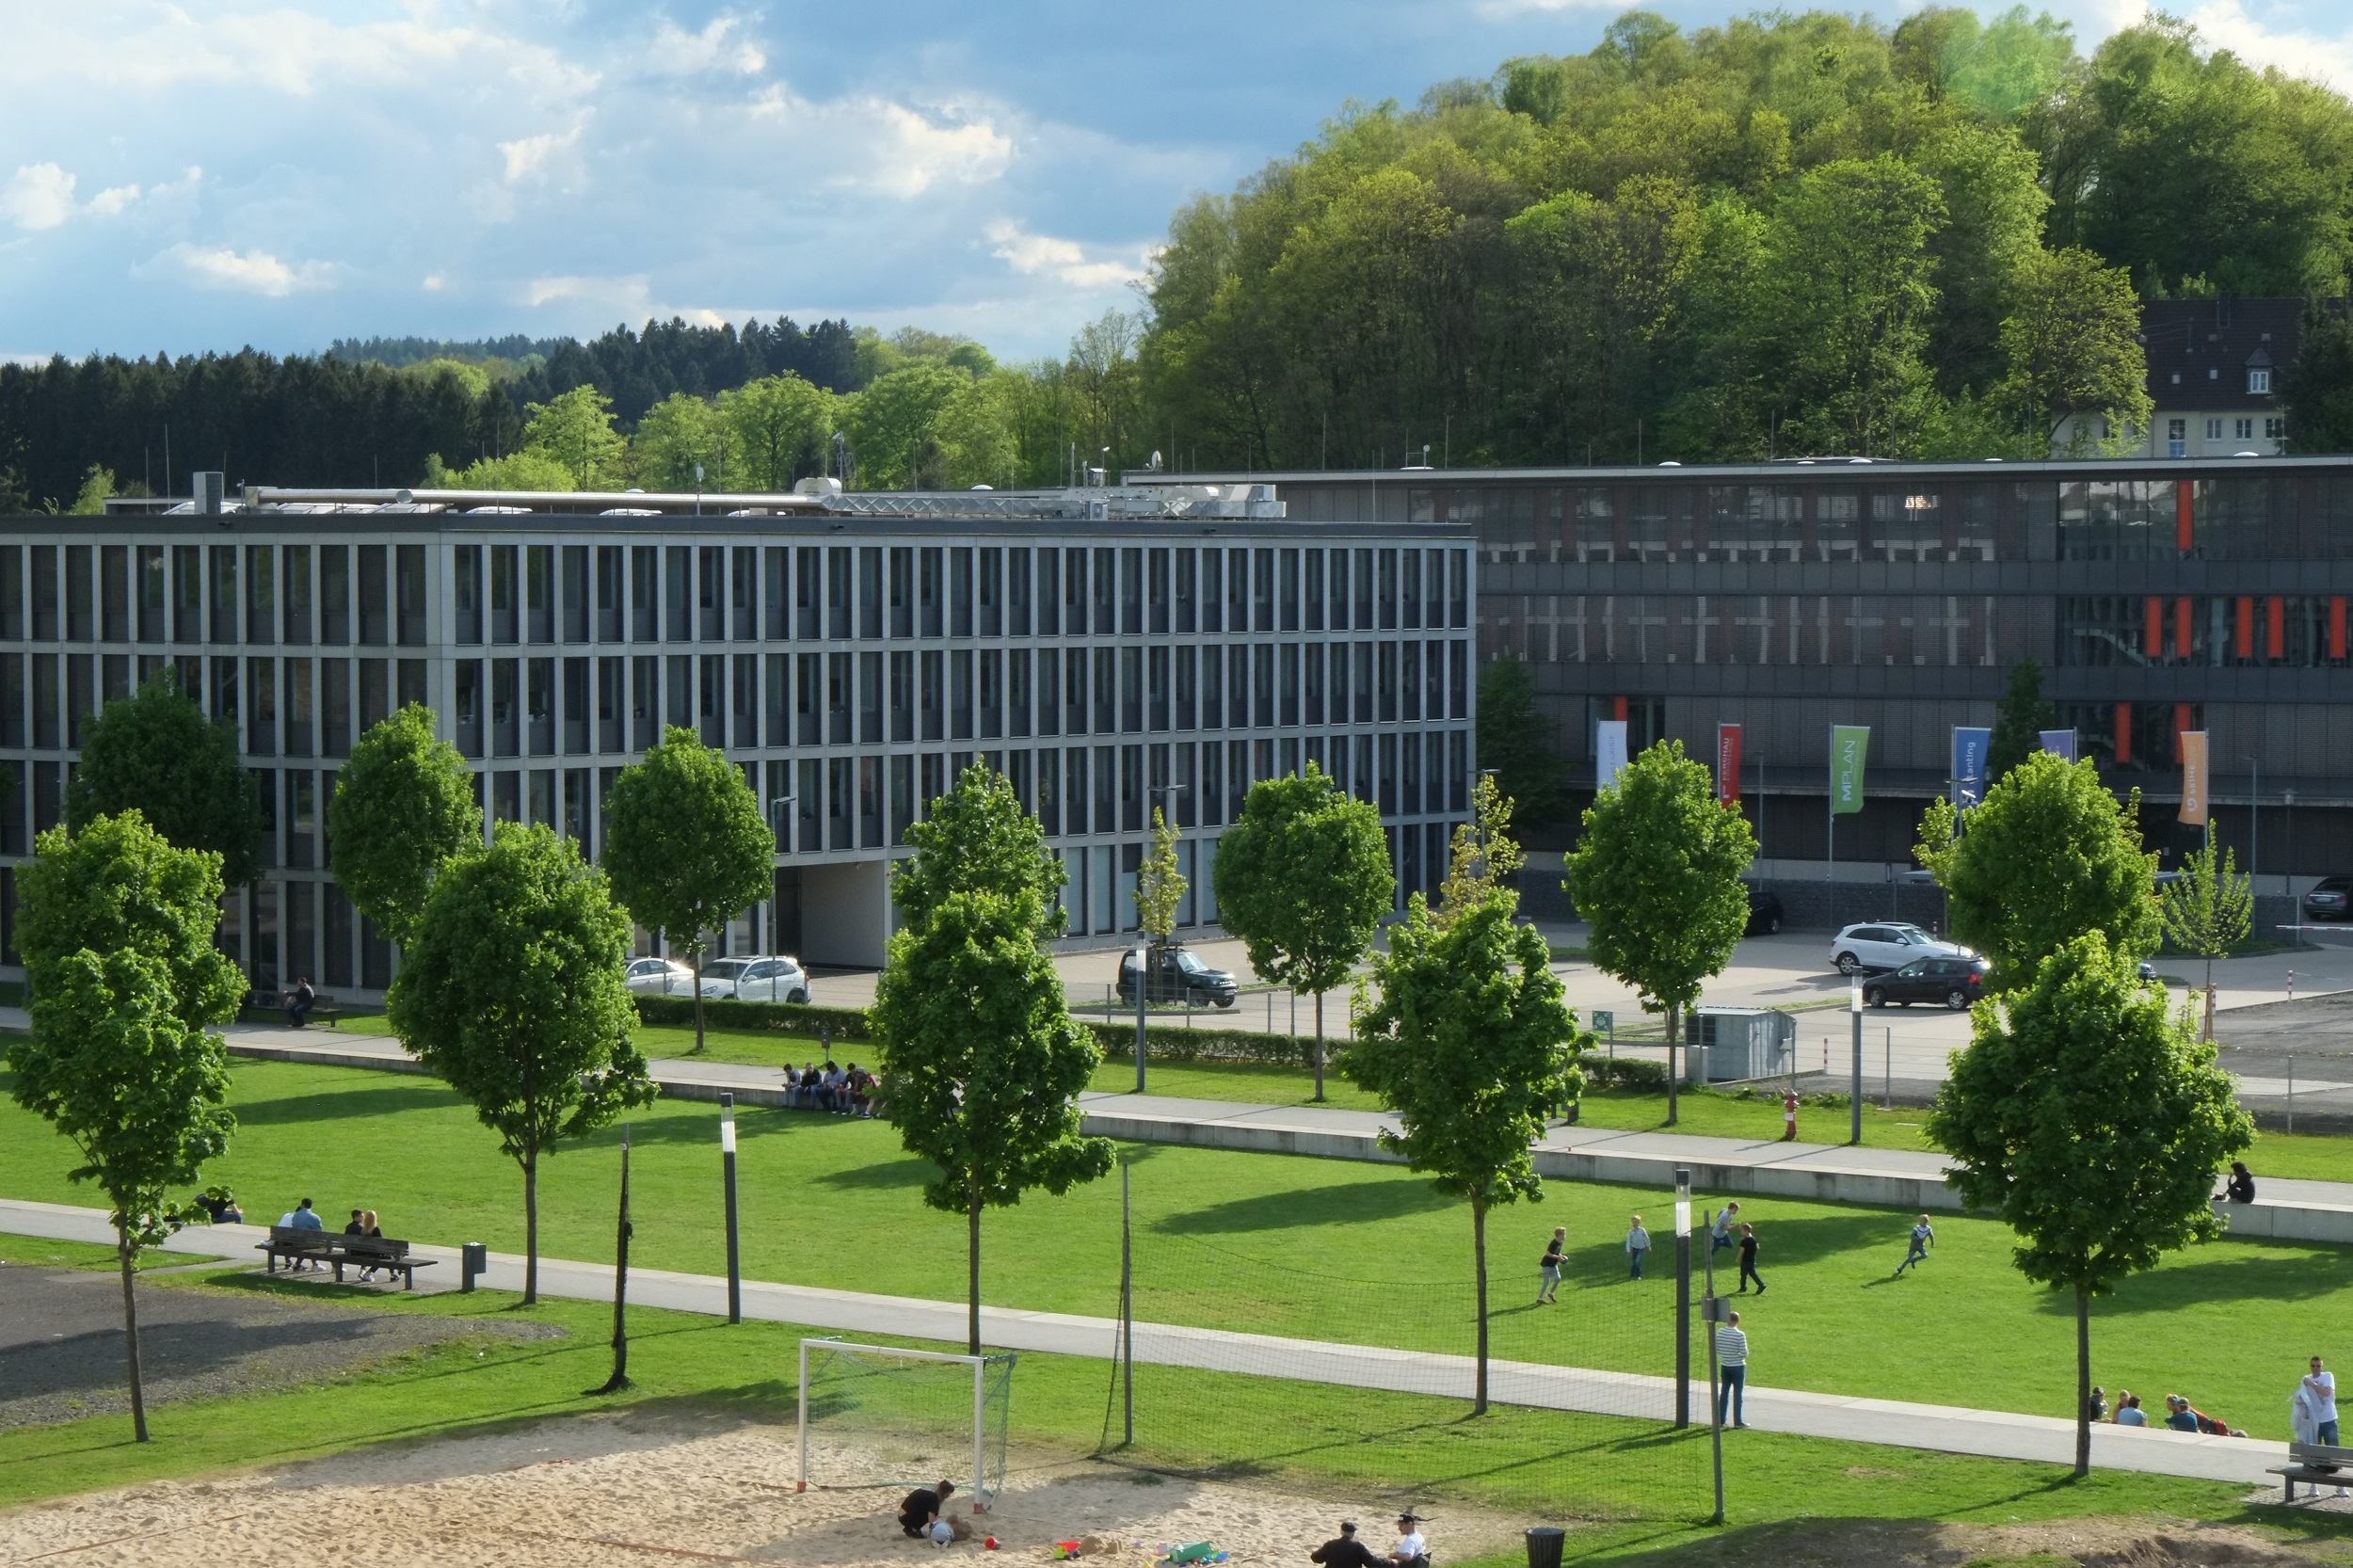 Stadtgarten, ABLE-Group/Ferchau und TH Köln, Campus Gummersbach